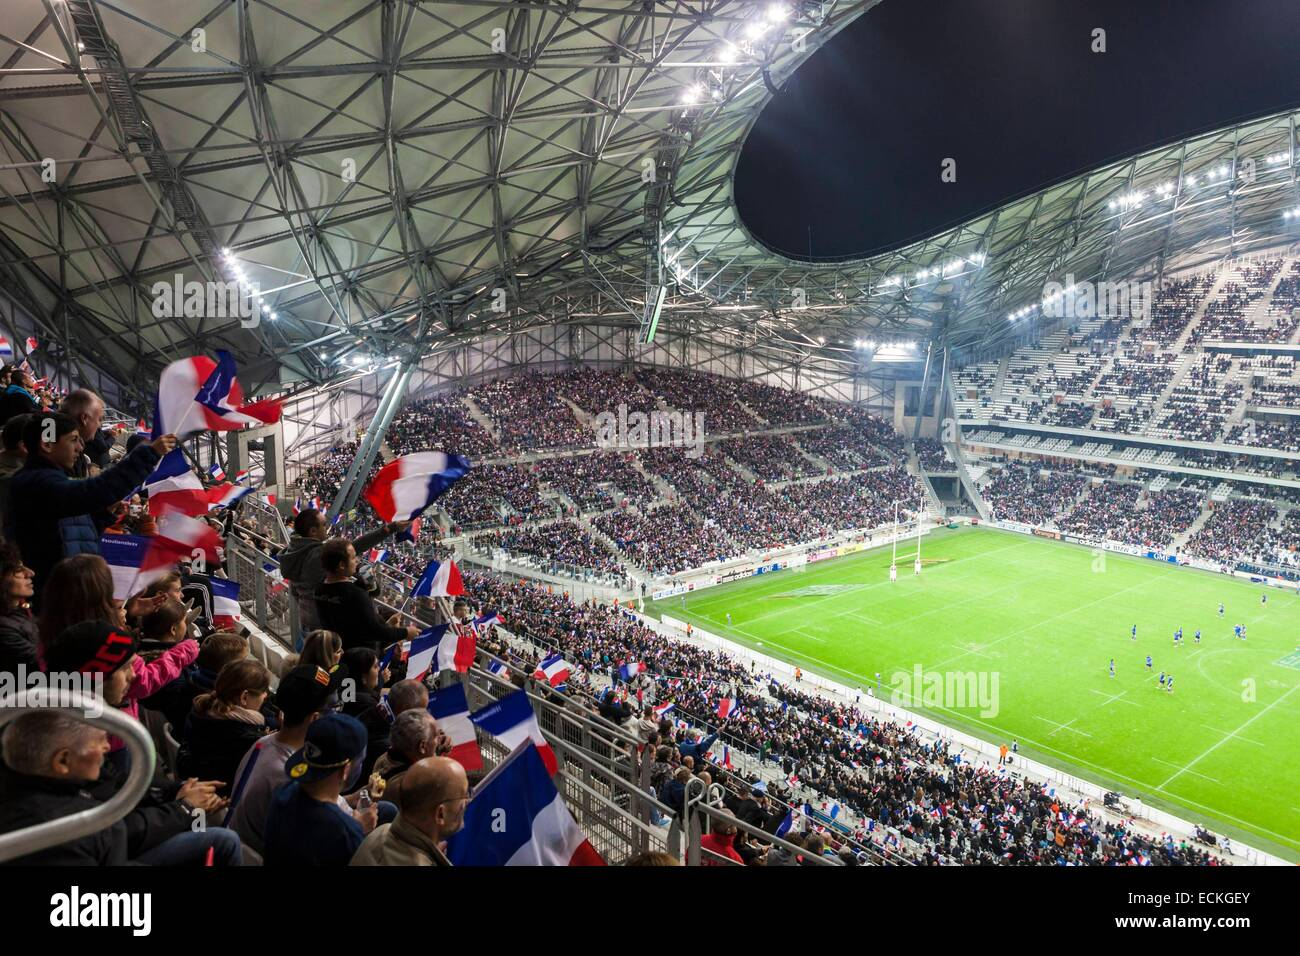 France, Bouches du Rhone, Marseille, Rond Point du Prado district, the Stade Velodrome - Stock Image